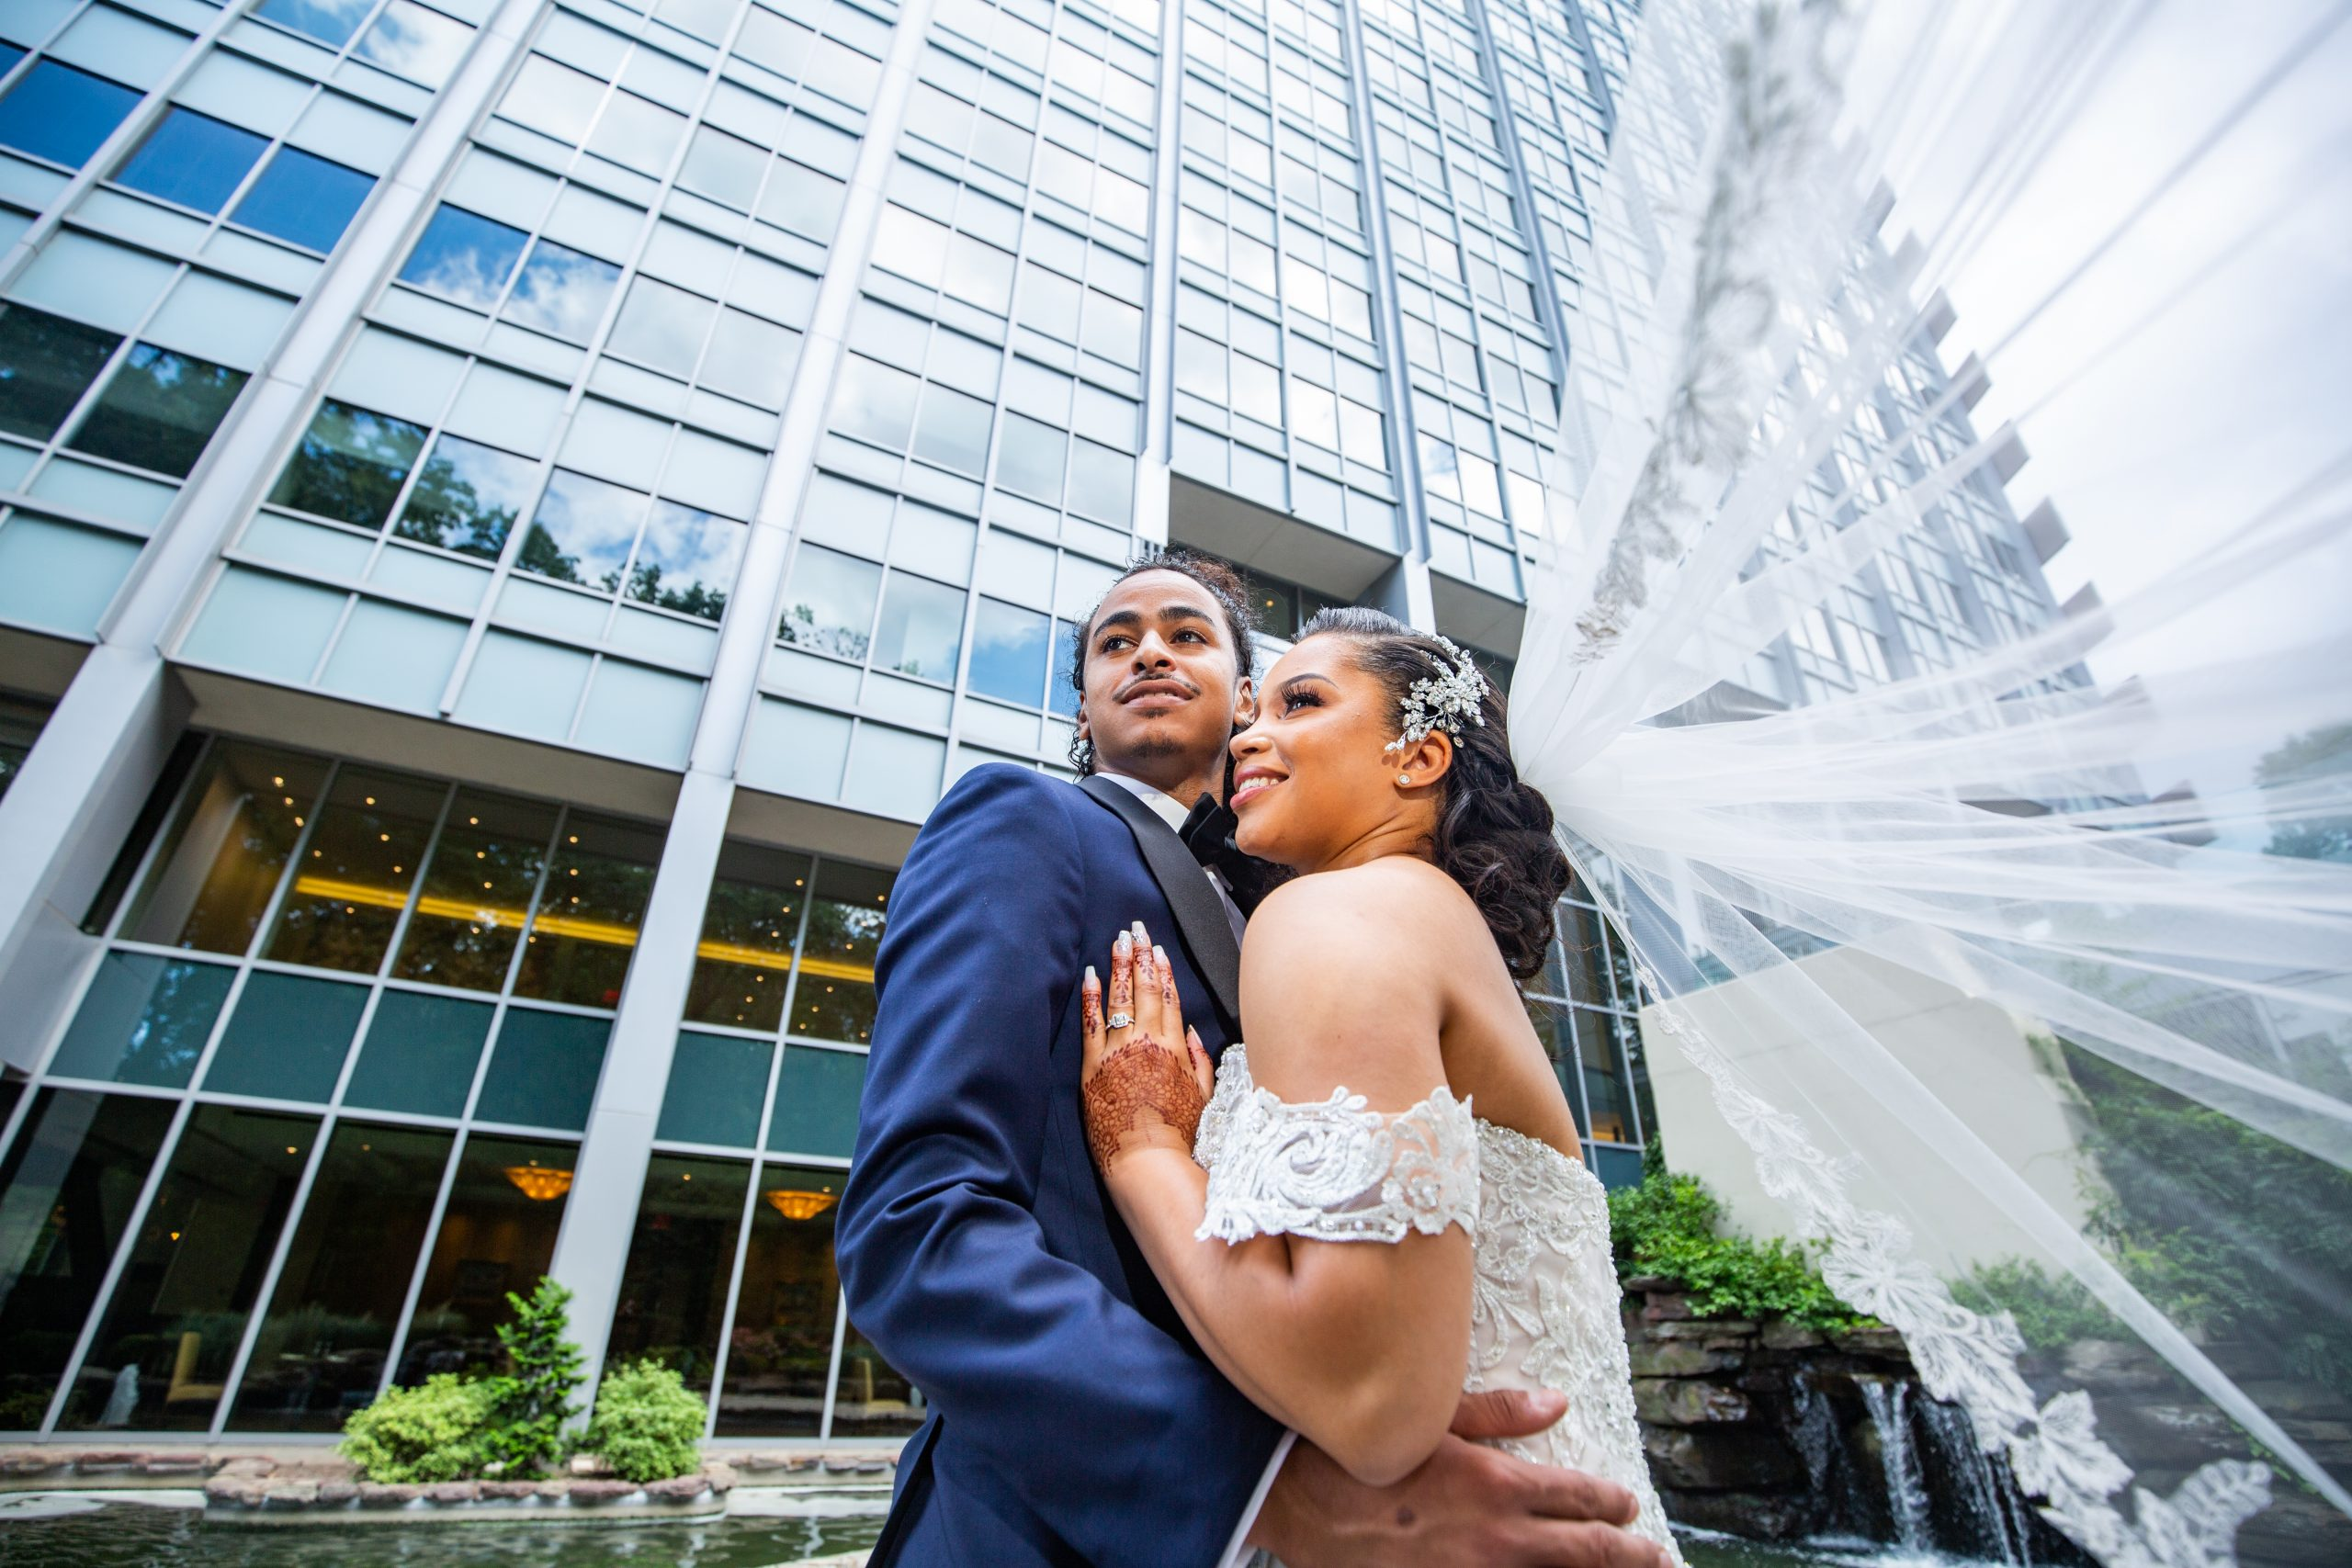 Why invest in wedding videography